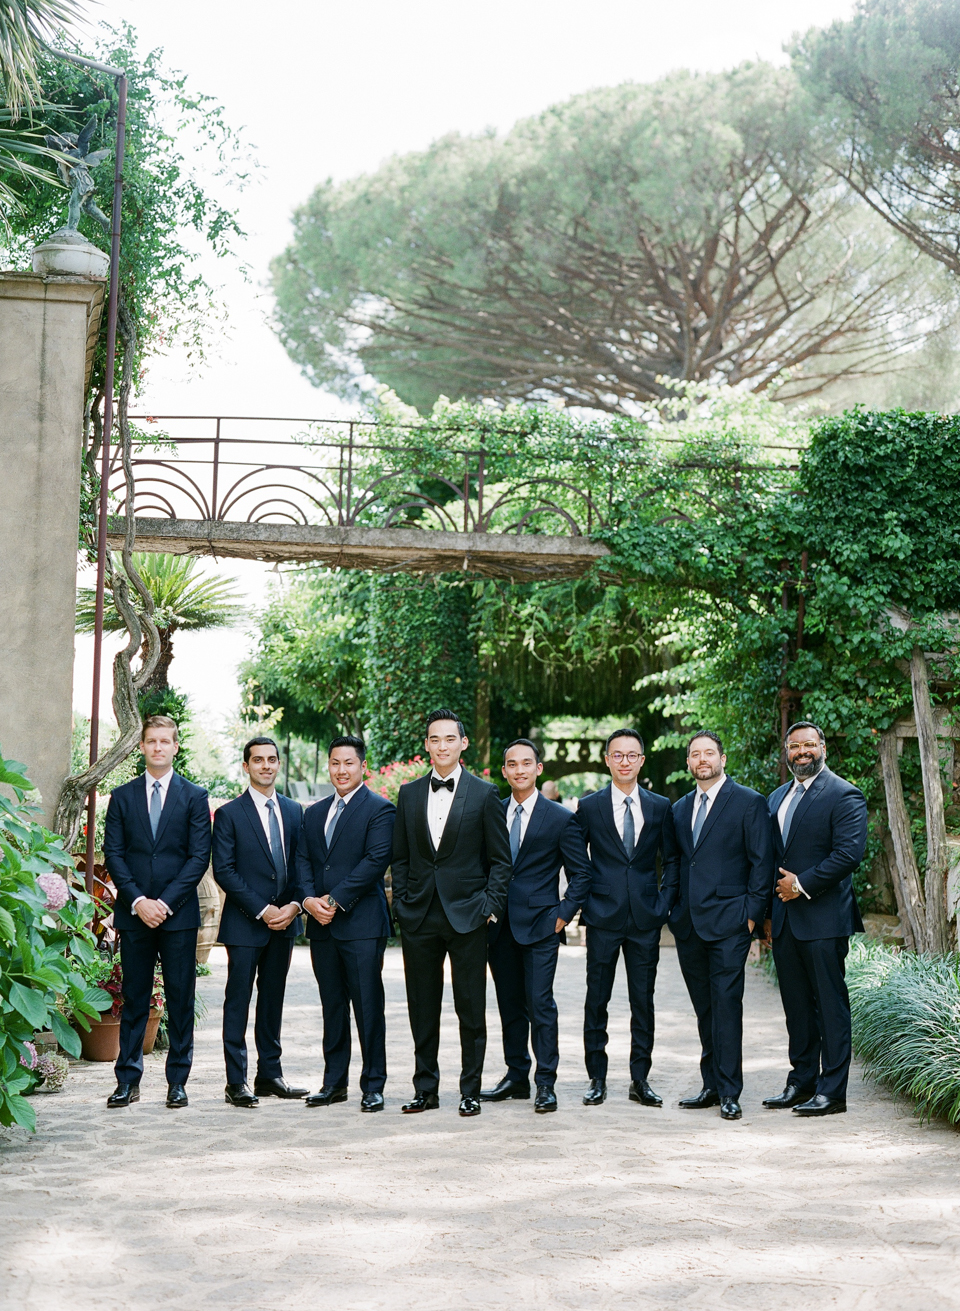 adrienne cameron wedding groomsmen in garden